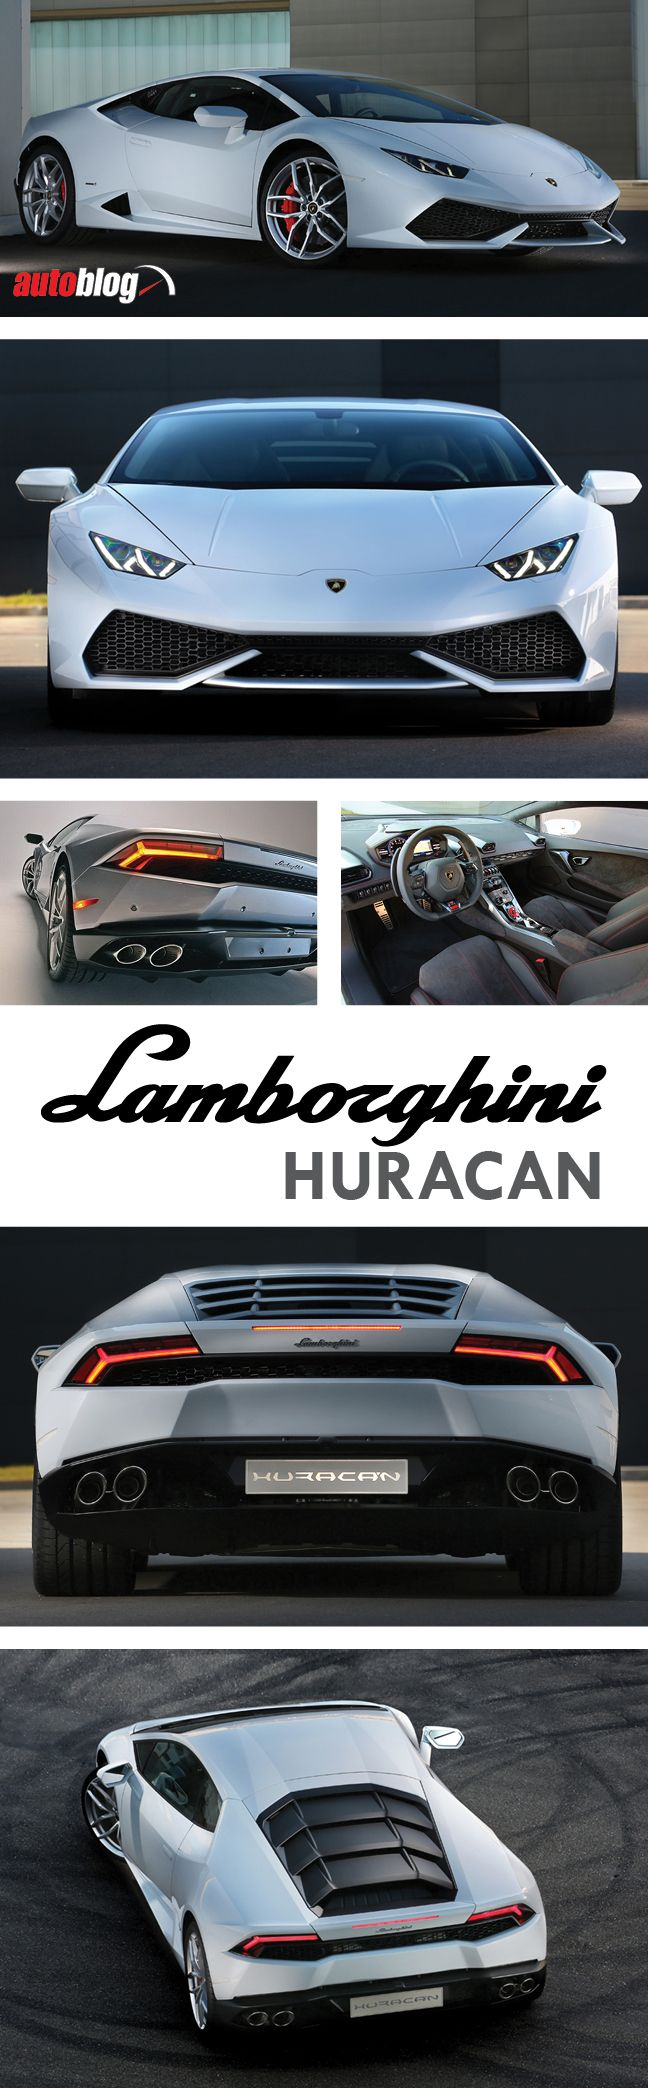 2015 Lamborghini Huracán Power comes from a 602bhp V10 with a seven-speed dual-clutch automated gearbox and all-wheel drive, helping it accelerate from 0–60 mph in just under 3s, and a top speed of 202 mph.⚡️Get Tons of Free Traffic and Followers On Autopilot with Your Instagram Account⚡️ Tap the Link in my Bio Follow my Friends Below Follow ➡️ @must.love.animals ➡️ @must.love.animals Follow ➡️@inspiration.and.quotes $.77